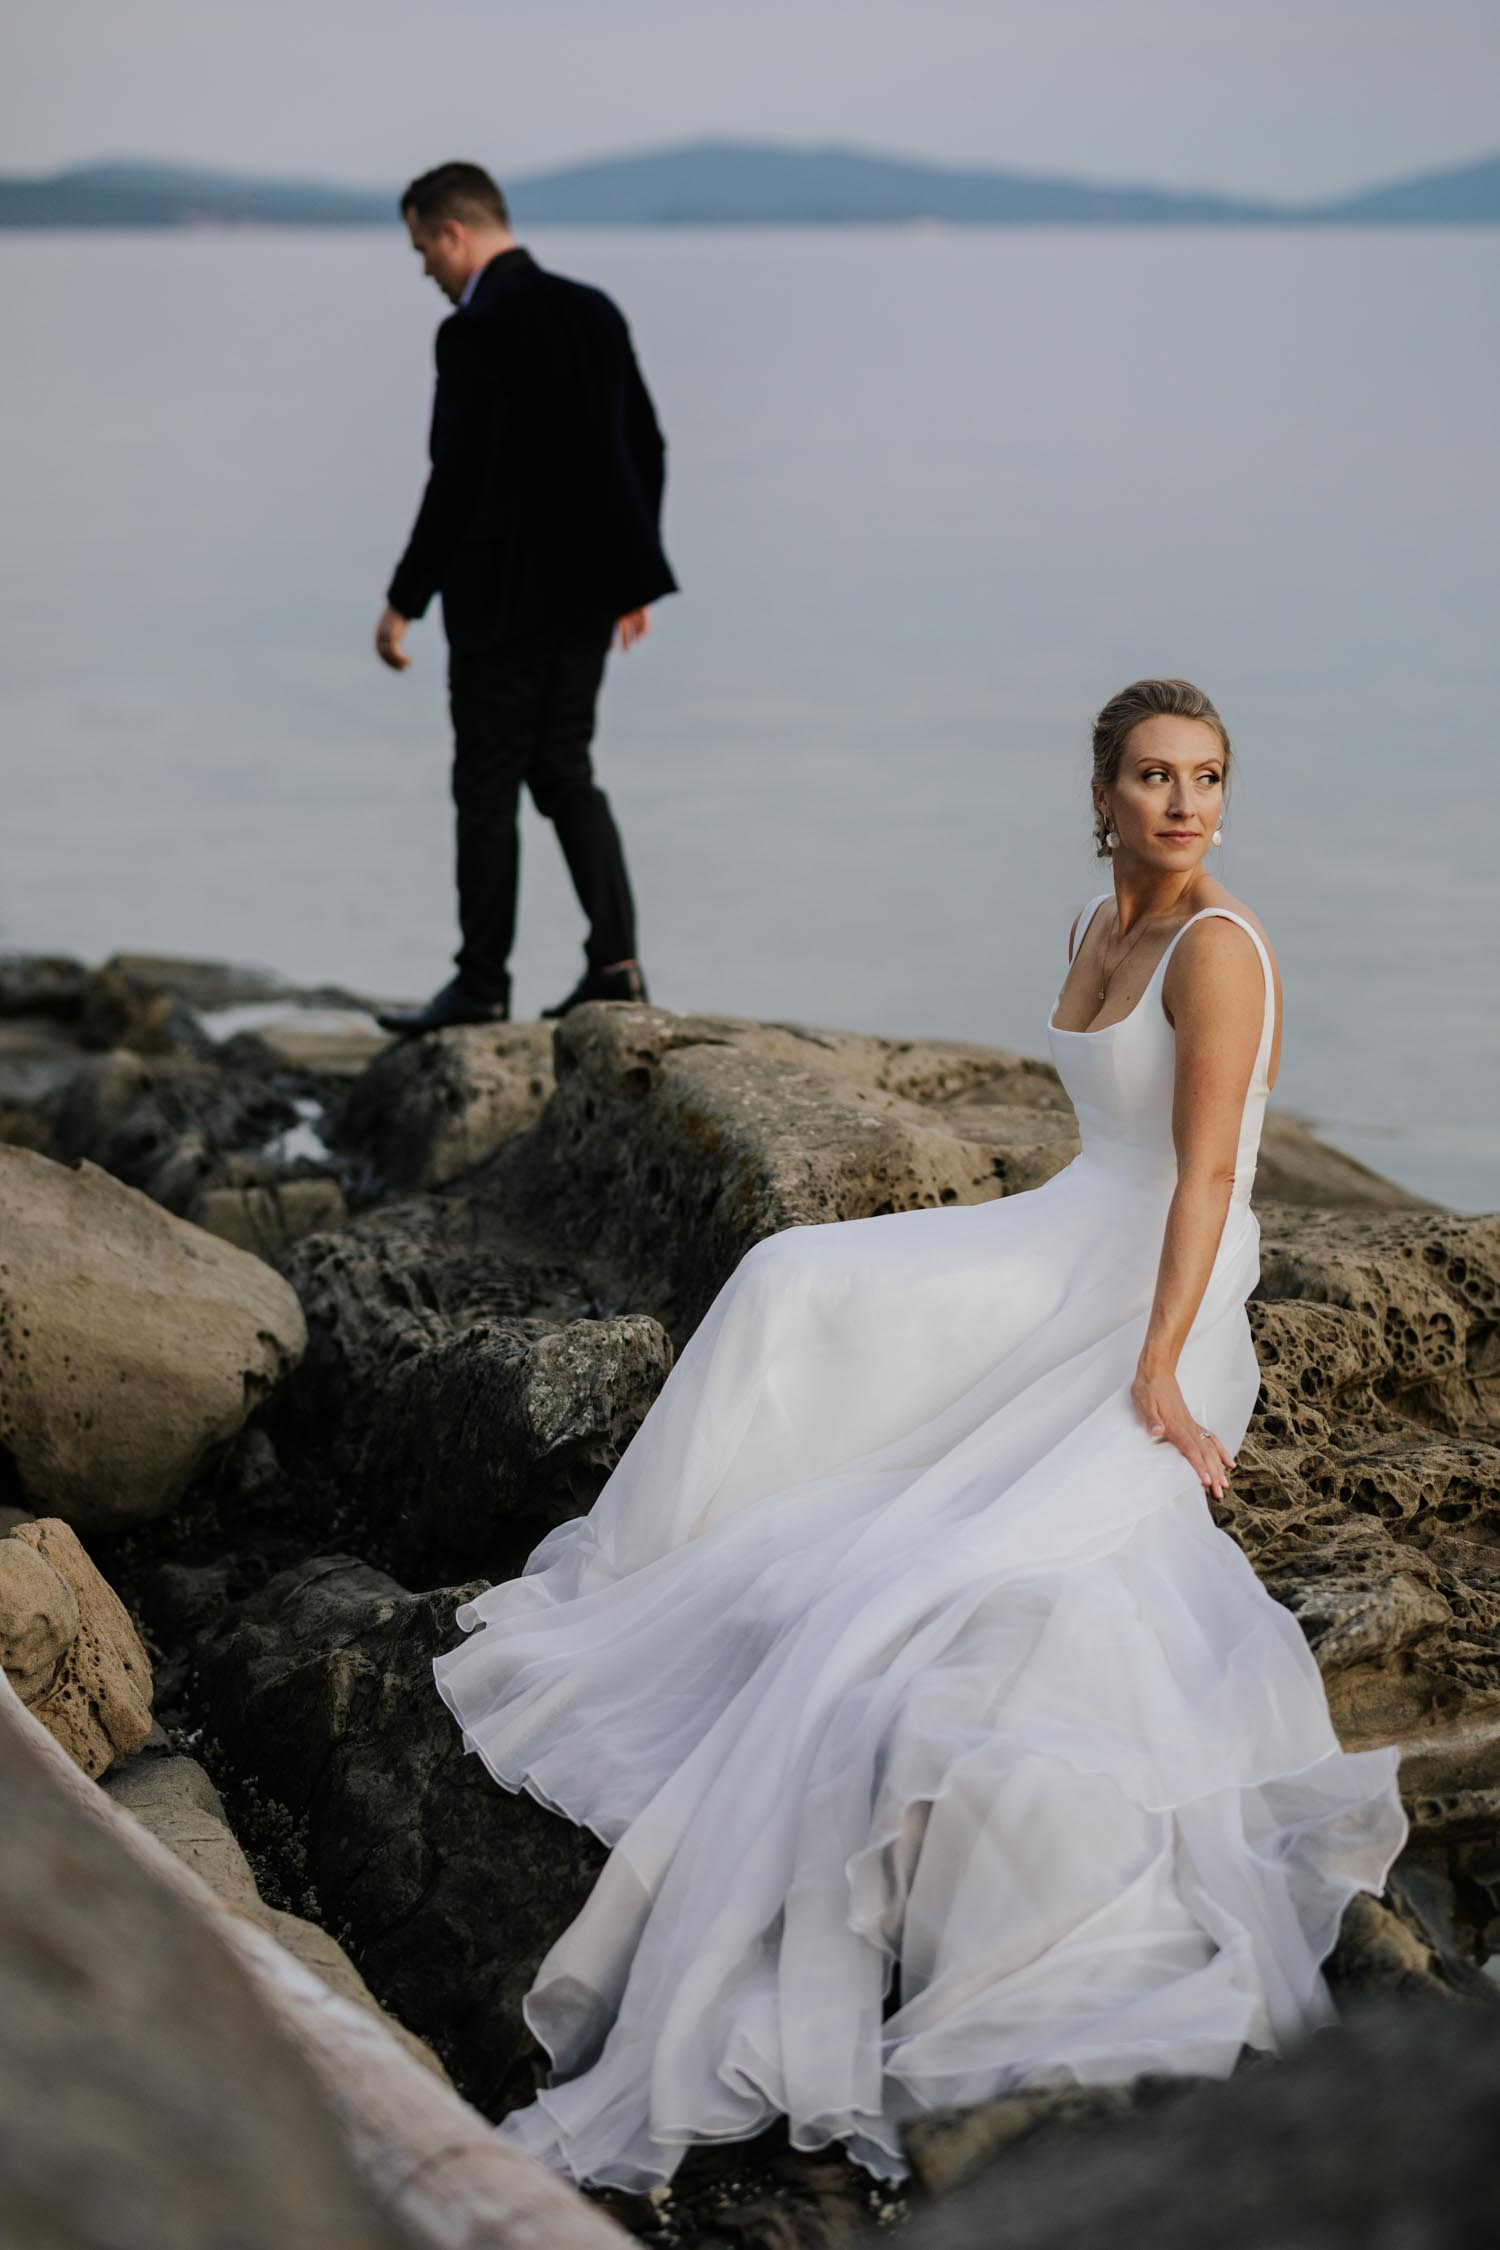 Creative Vancouver Island Wedding Photographer captures intimate beach wedding on Vancouver Island at beautiful venue and location with sea and mountain views